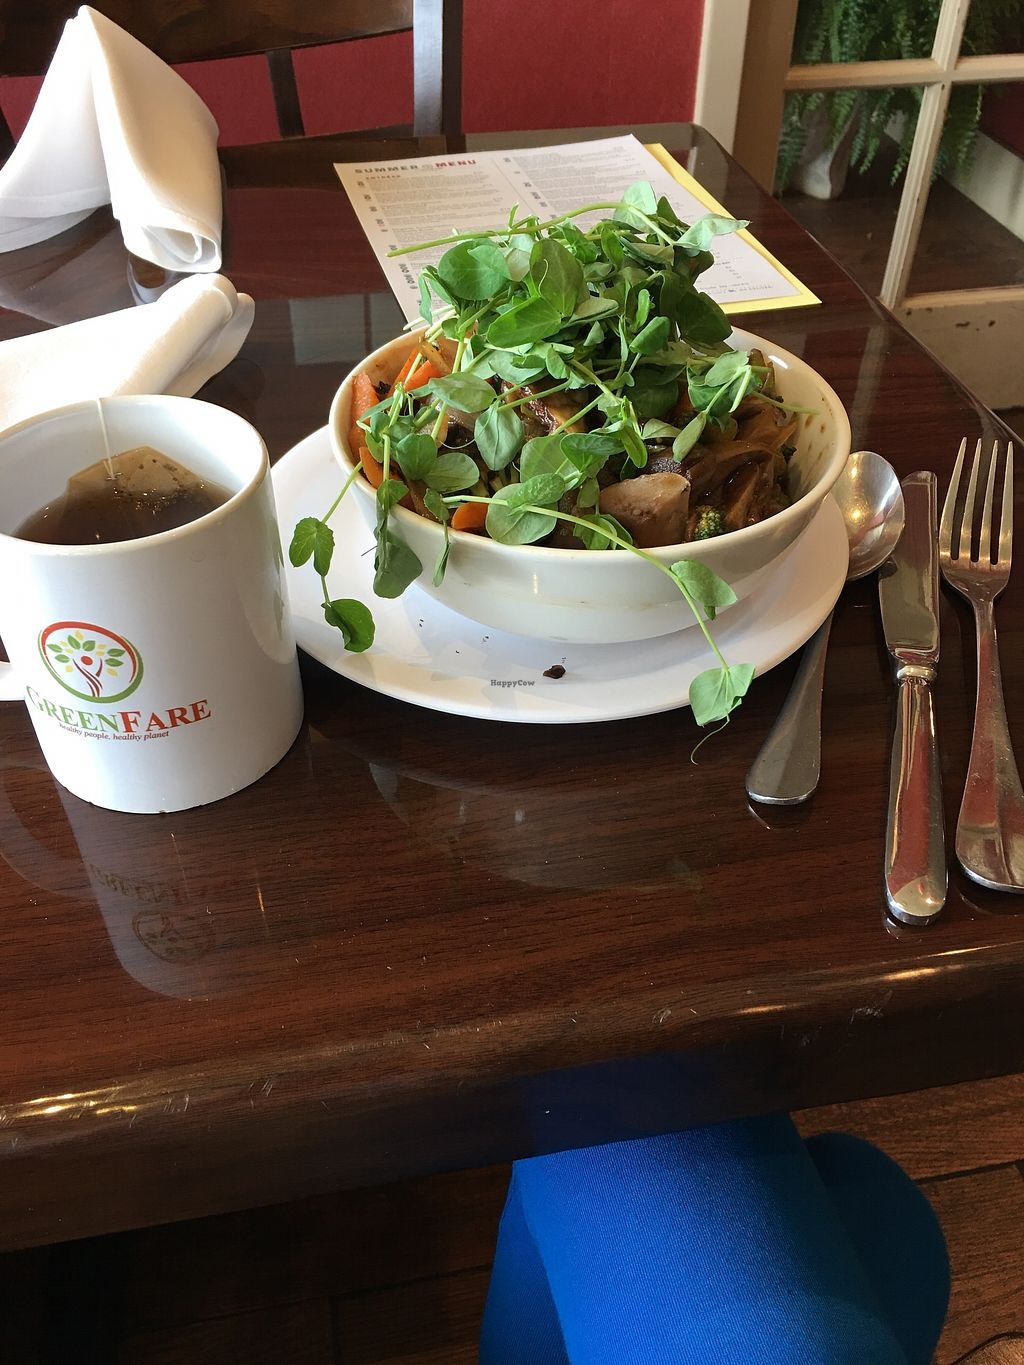 """Photo of GreenFare Organic Cafe  by <a href=""""/members/profile/EarthyMurphy"""">EarthyMurphy</a> <br/>I visited a few weeks ago while rushing for time on the way to the airport. I've never been to such a clean and loving environment. I felt educated and cared for there. Organic Non-GMO food is a rare find and these people go above and beyond for their customers. I discovered that celebrities have even eaten here! So grateful for this find! Thank you! <br/> July 21, 2017  - <a href='/contact/abuse/image/65180/282722'>Report</a>"""